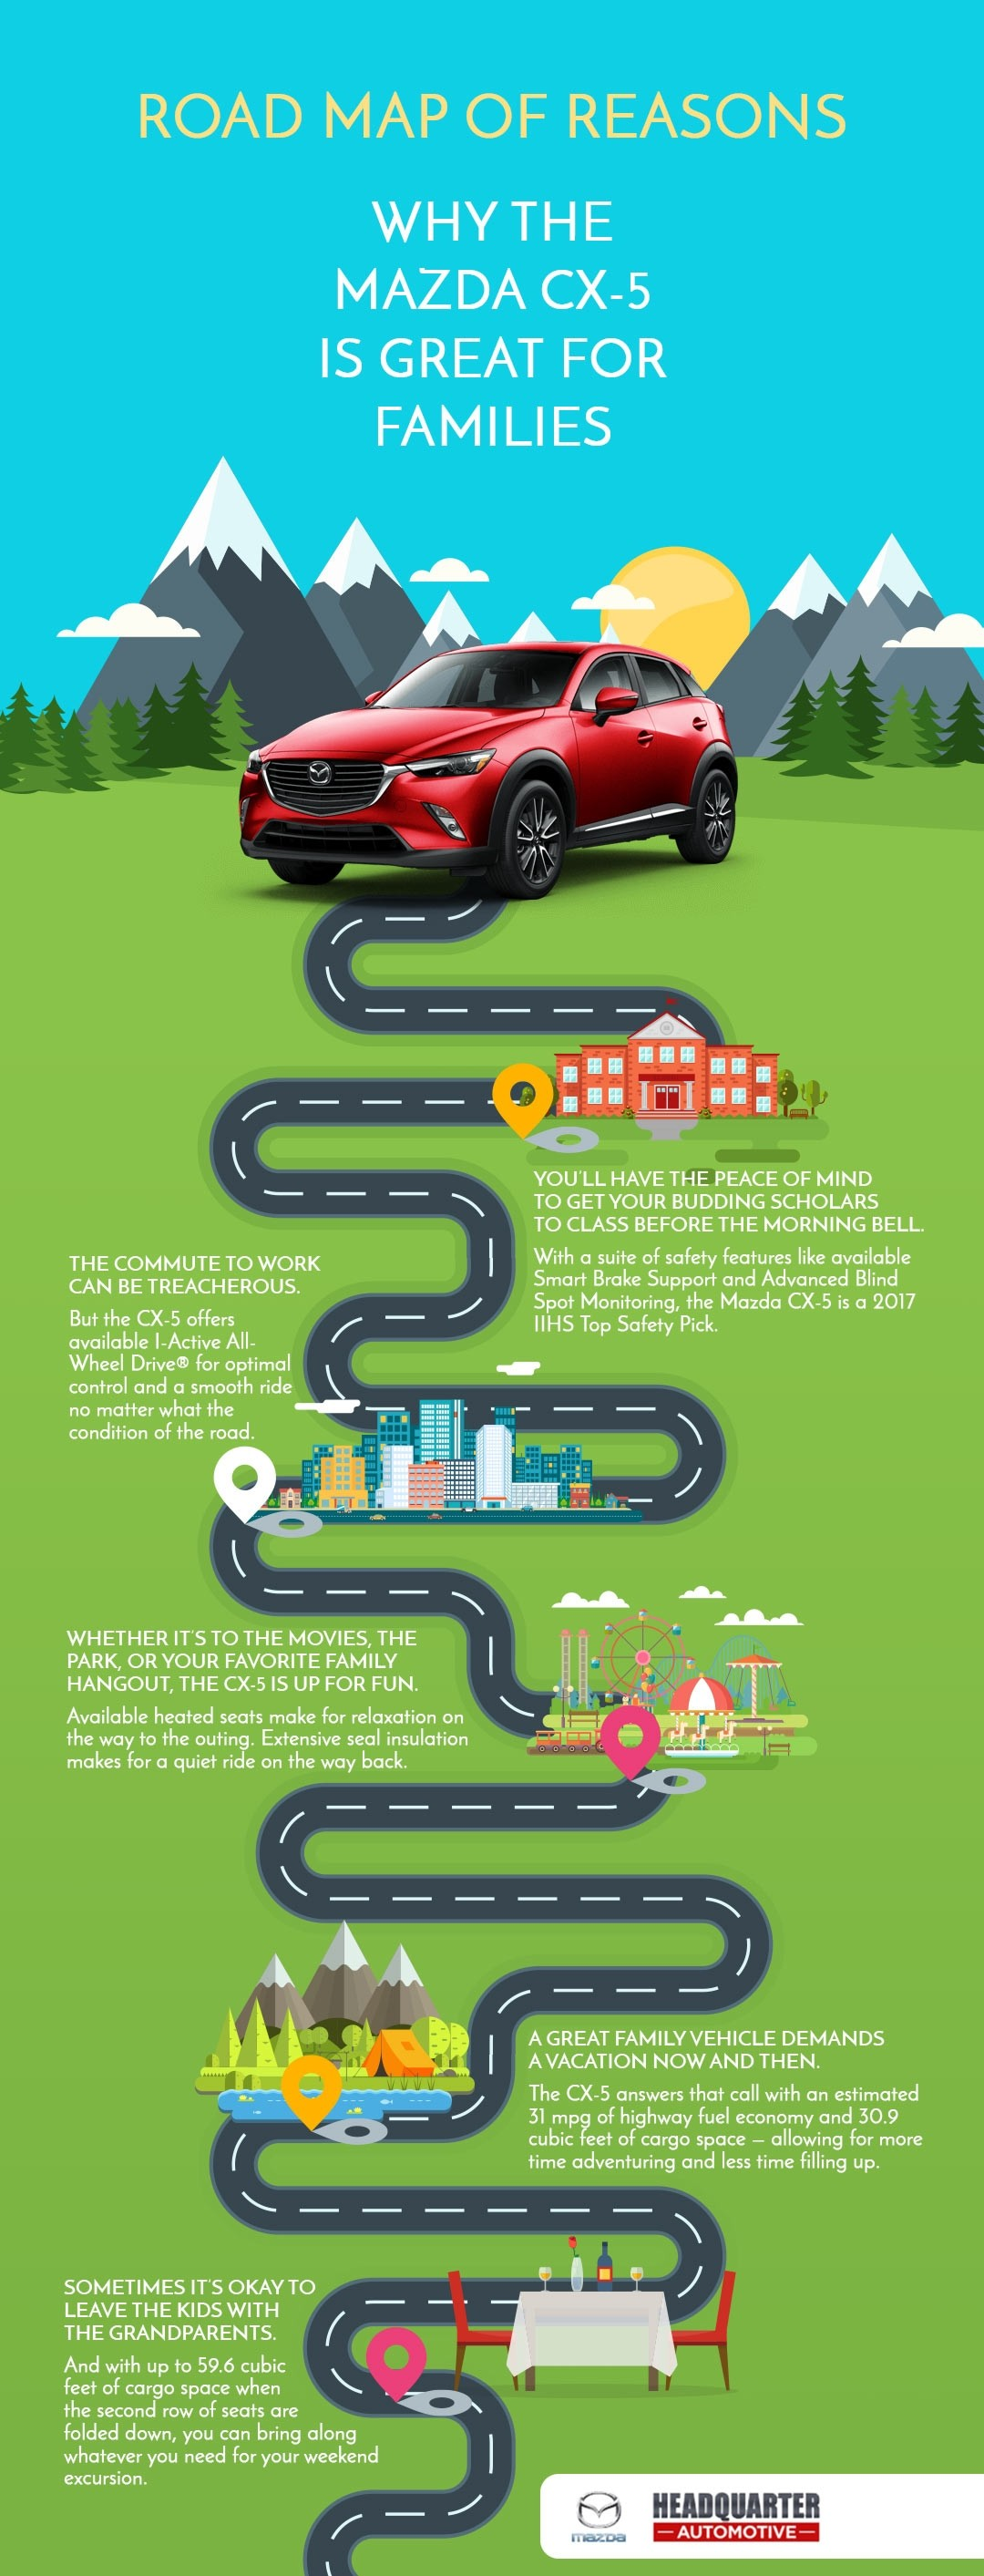 An infographic displaying a road map of reasons why the Mazda CX-5 is great for families